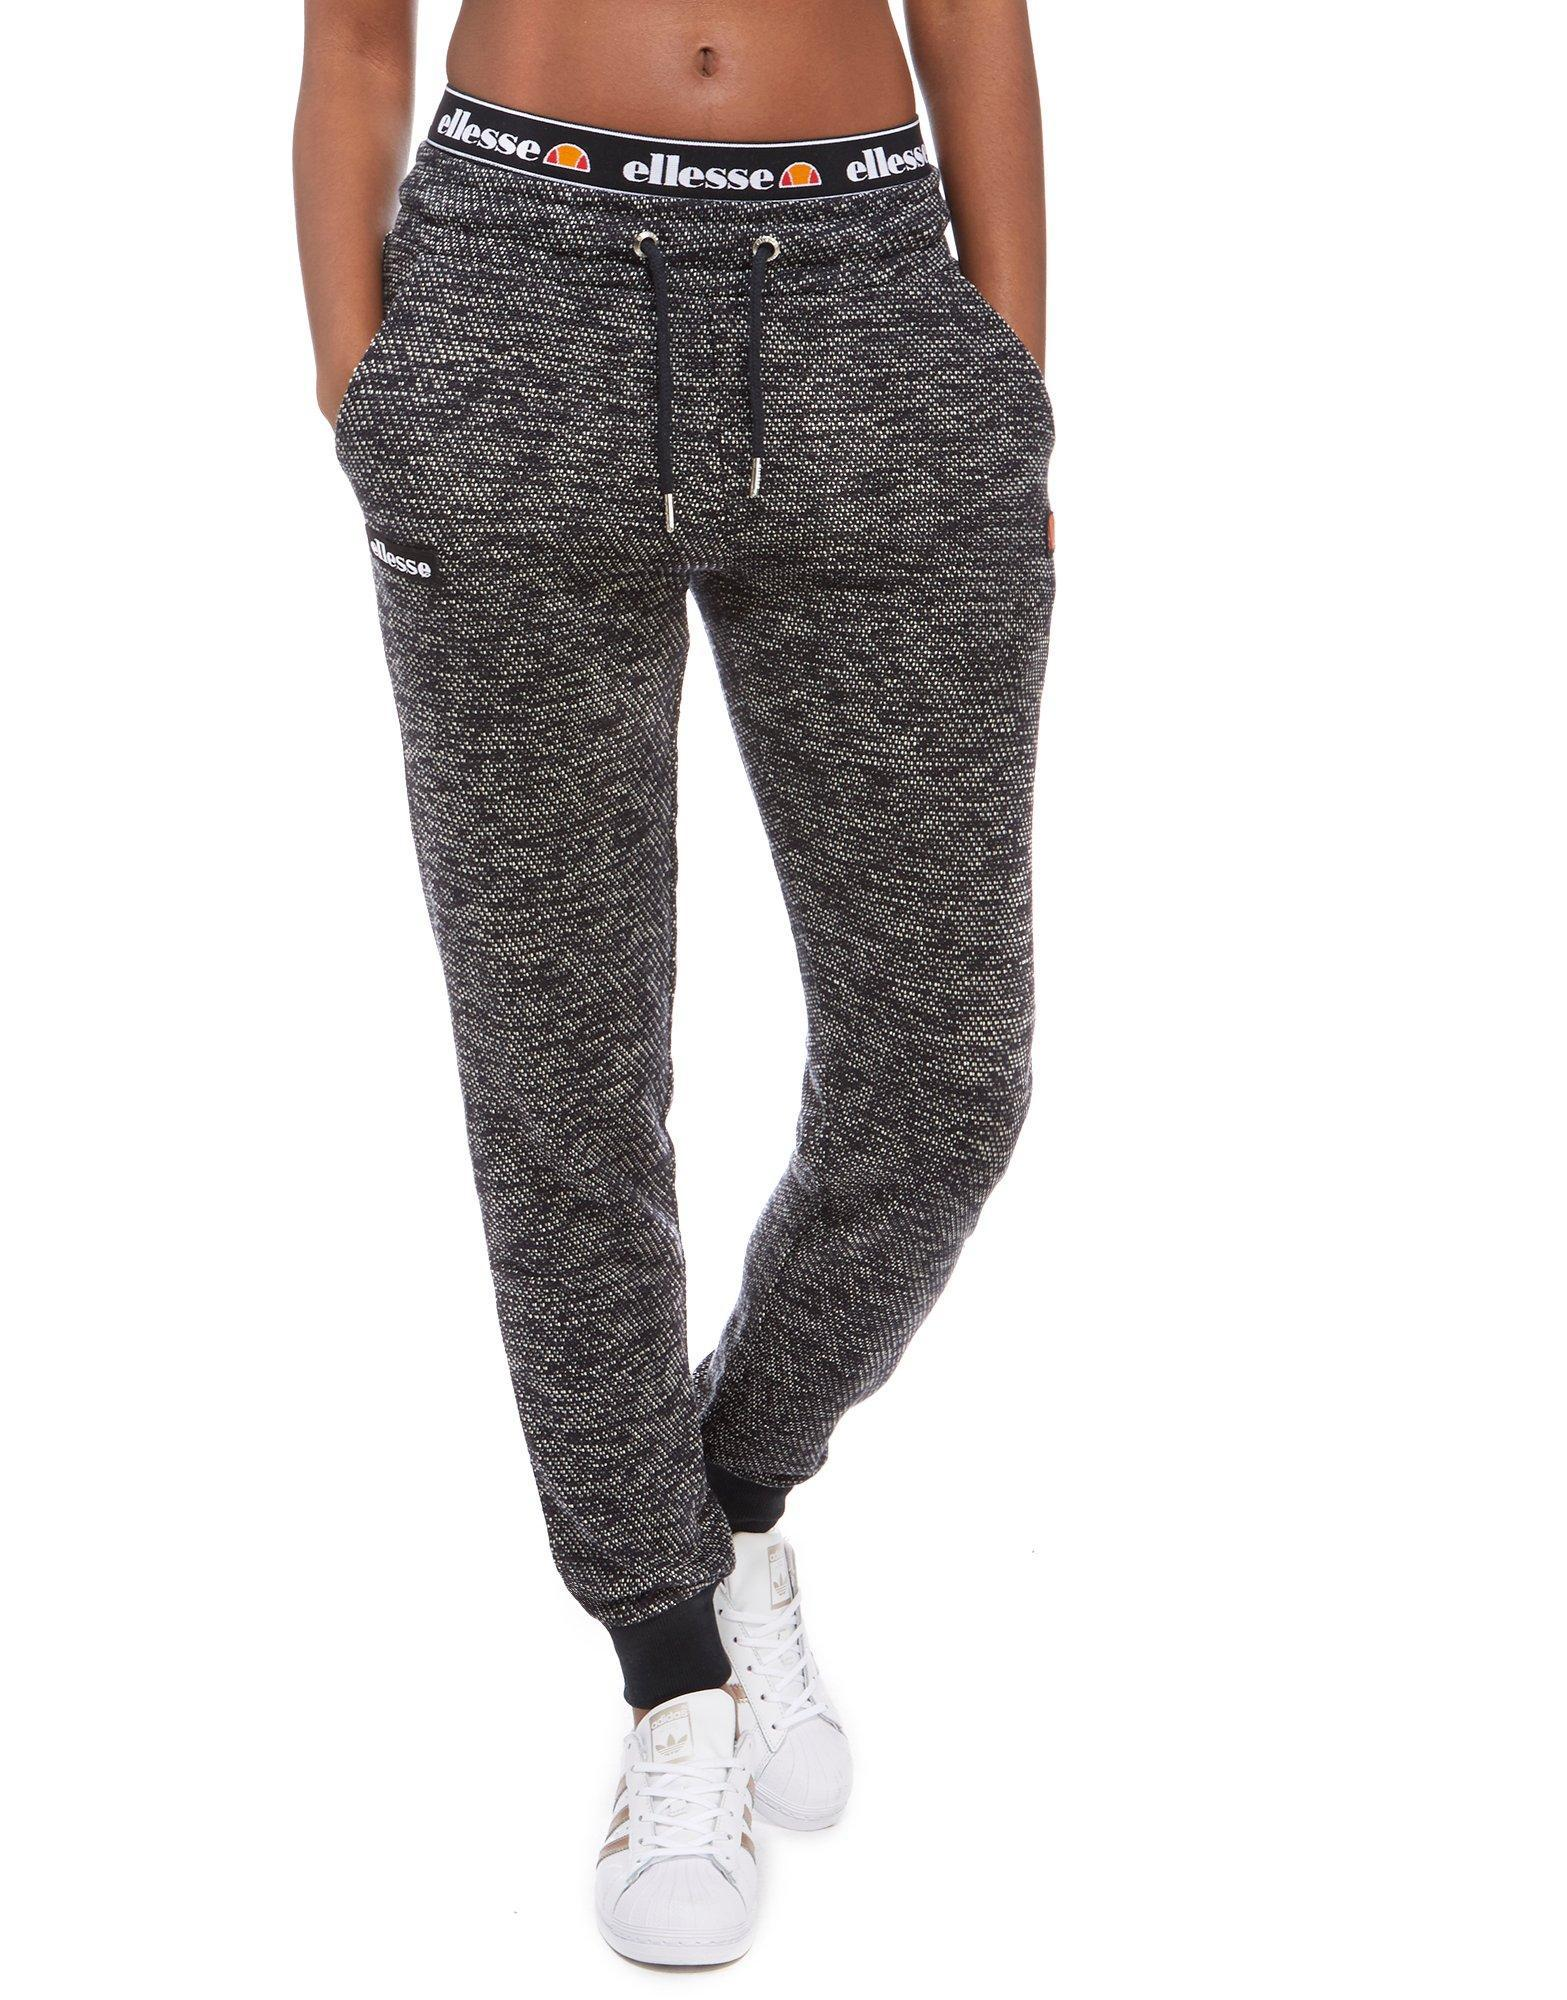 Lyst - Ellesse Tape Waistband Track Pants in Black 5d77813a624